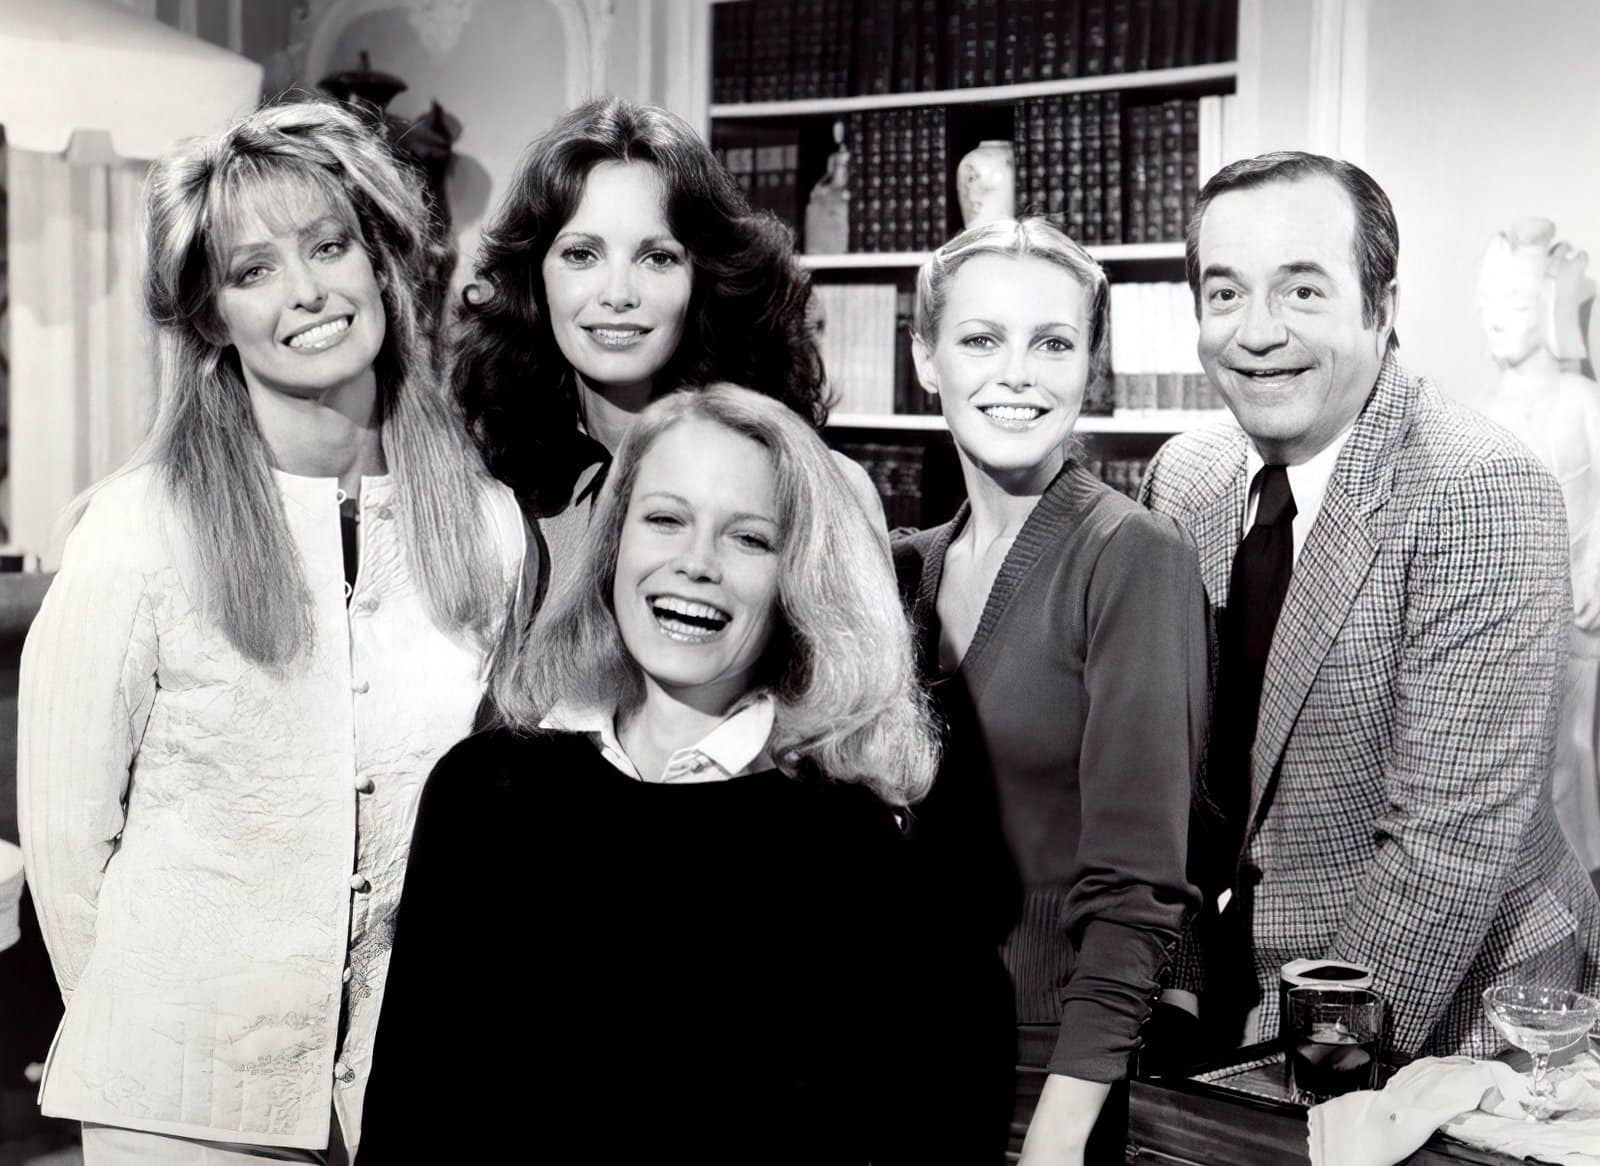 Four Charlie's Angels with Bosley - Vintage TV